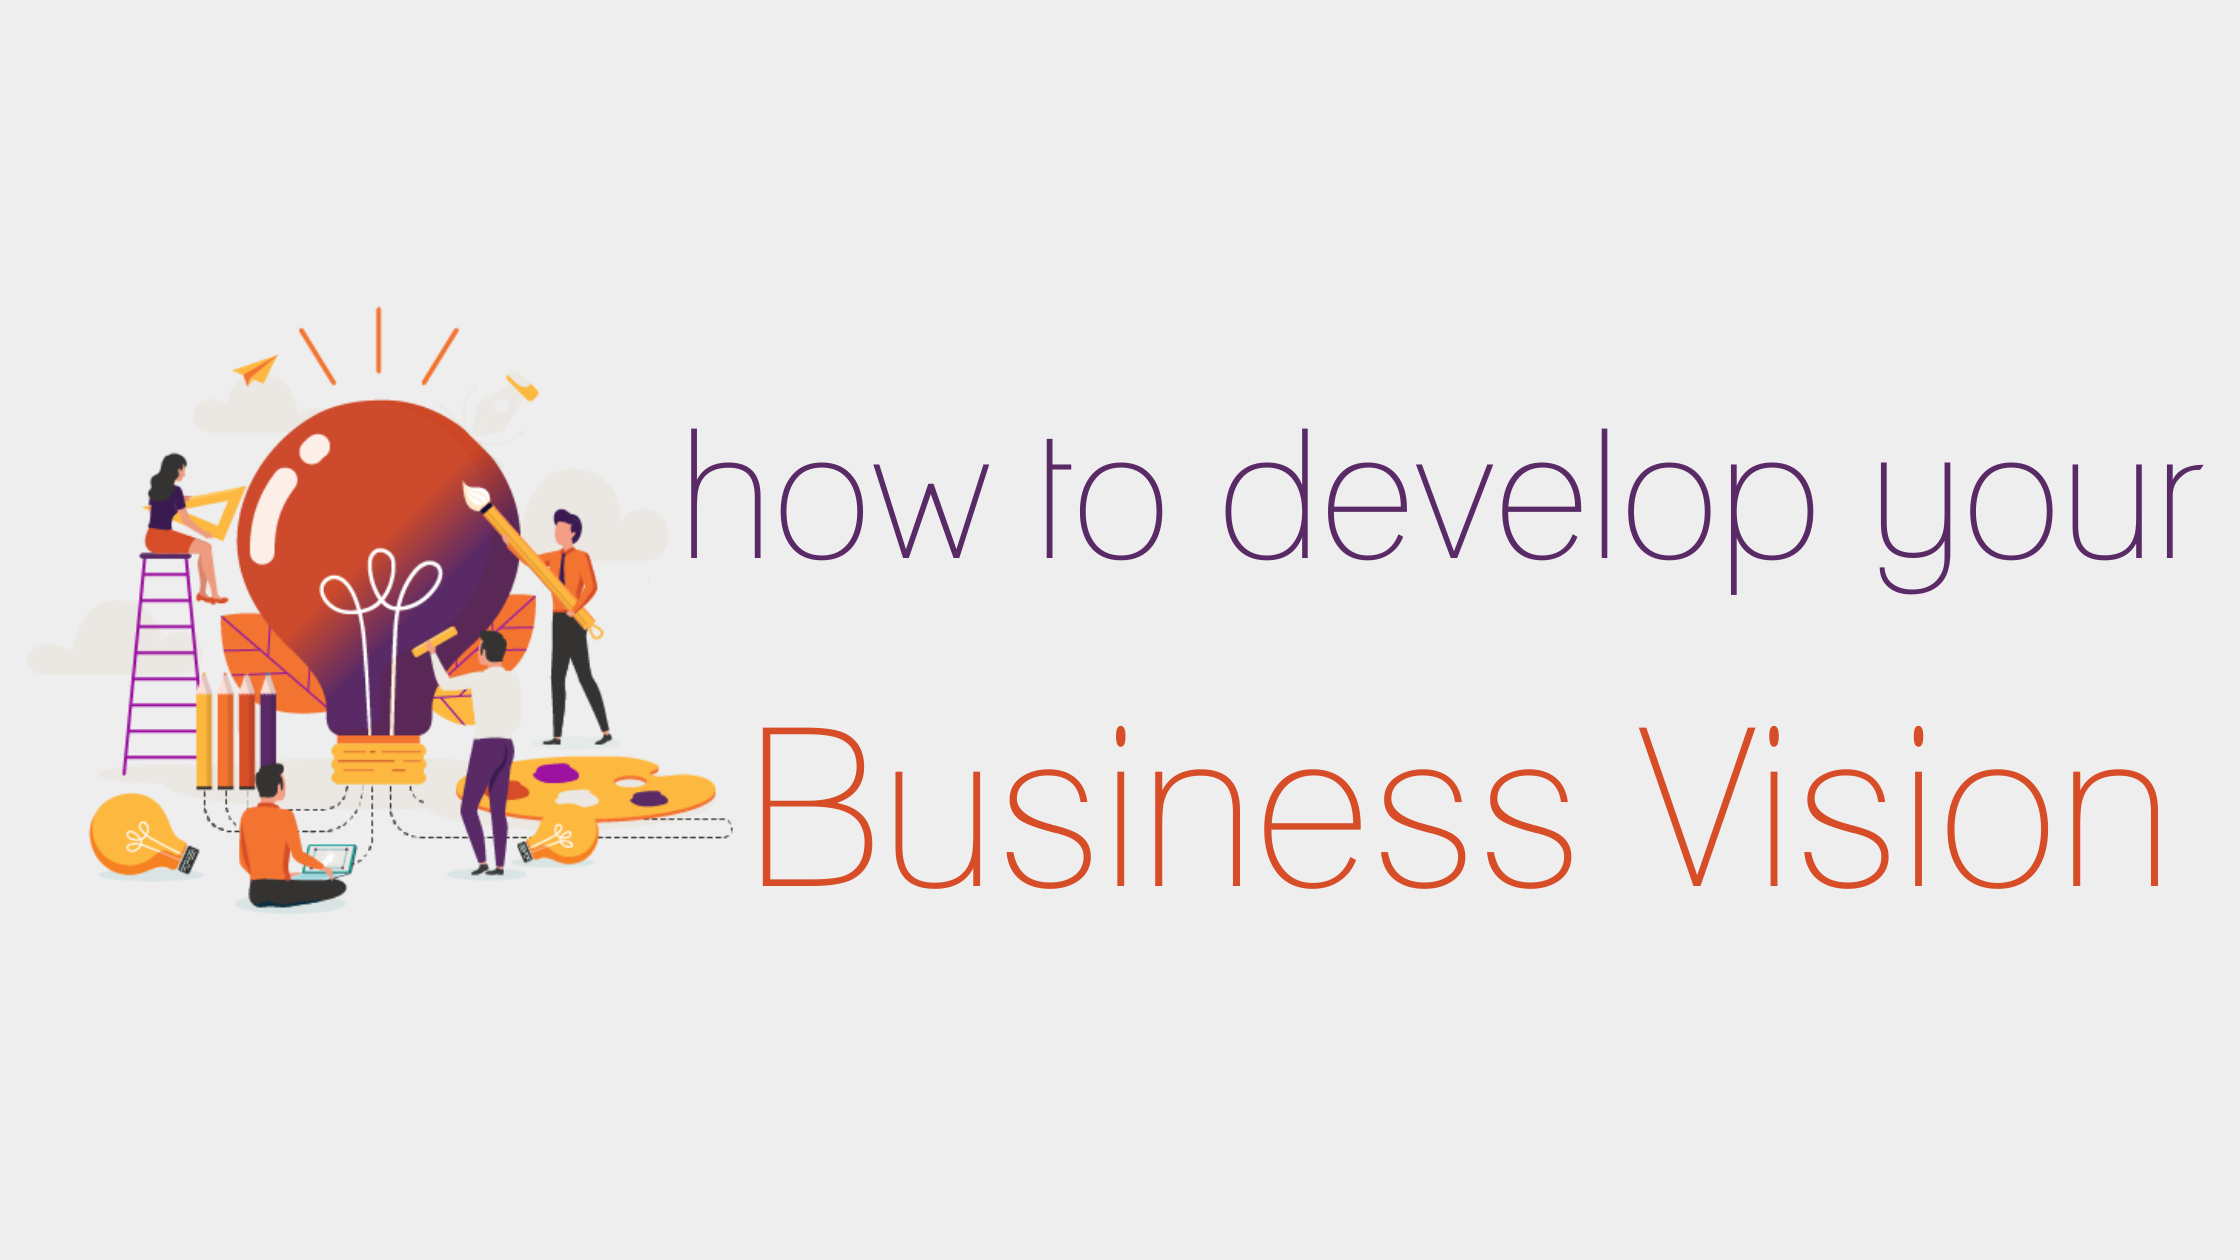 How to develop your business vision